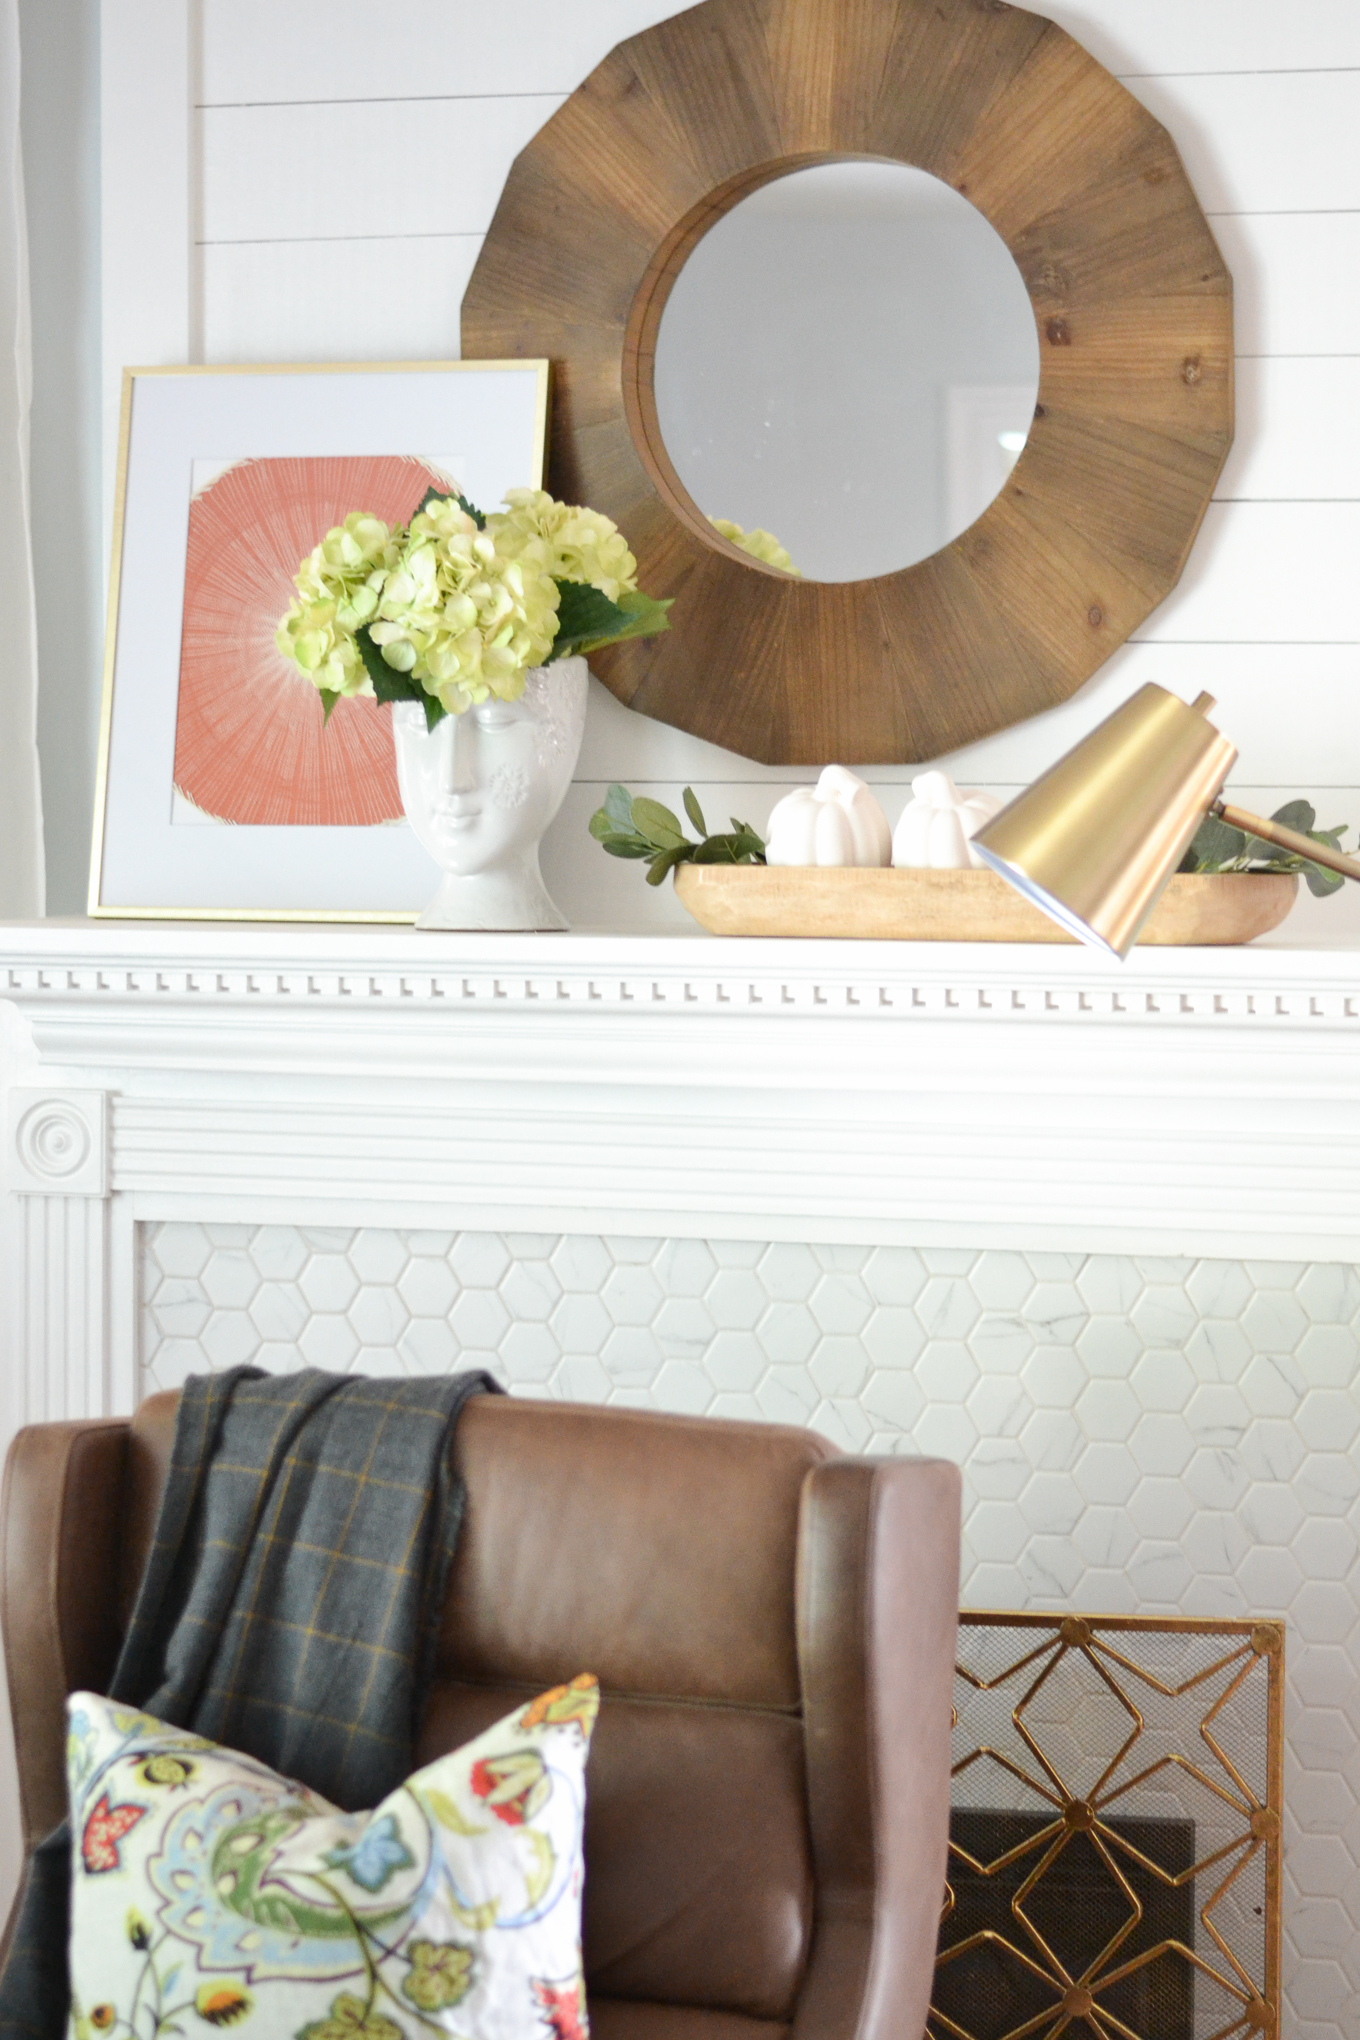 This Is Such A Simple Fall Living Room Decorating Idea. Bring In Warmth  With Cozy Throws, Add In A Pouf, And Layer In The Texture.